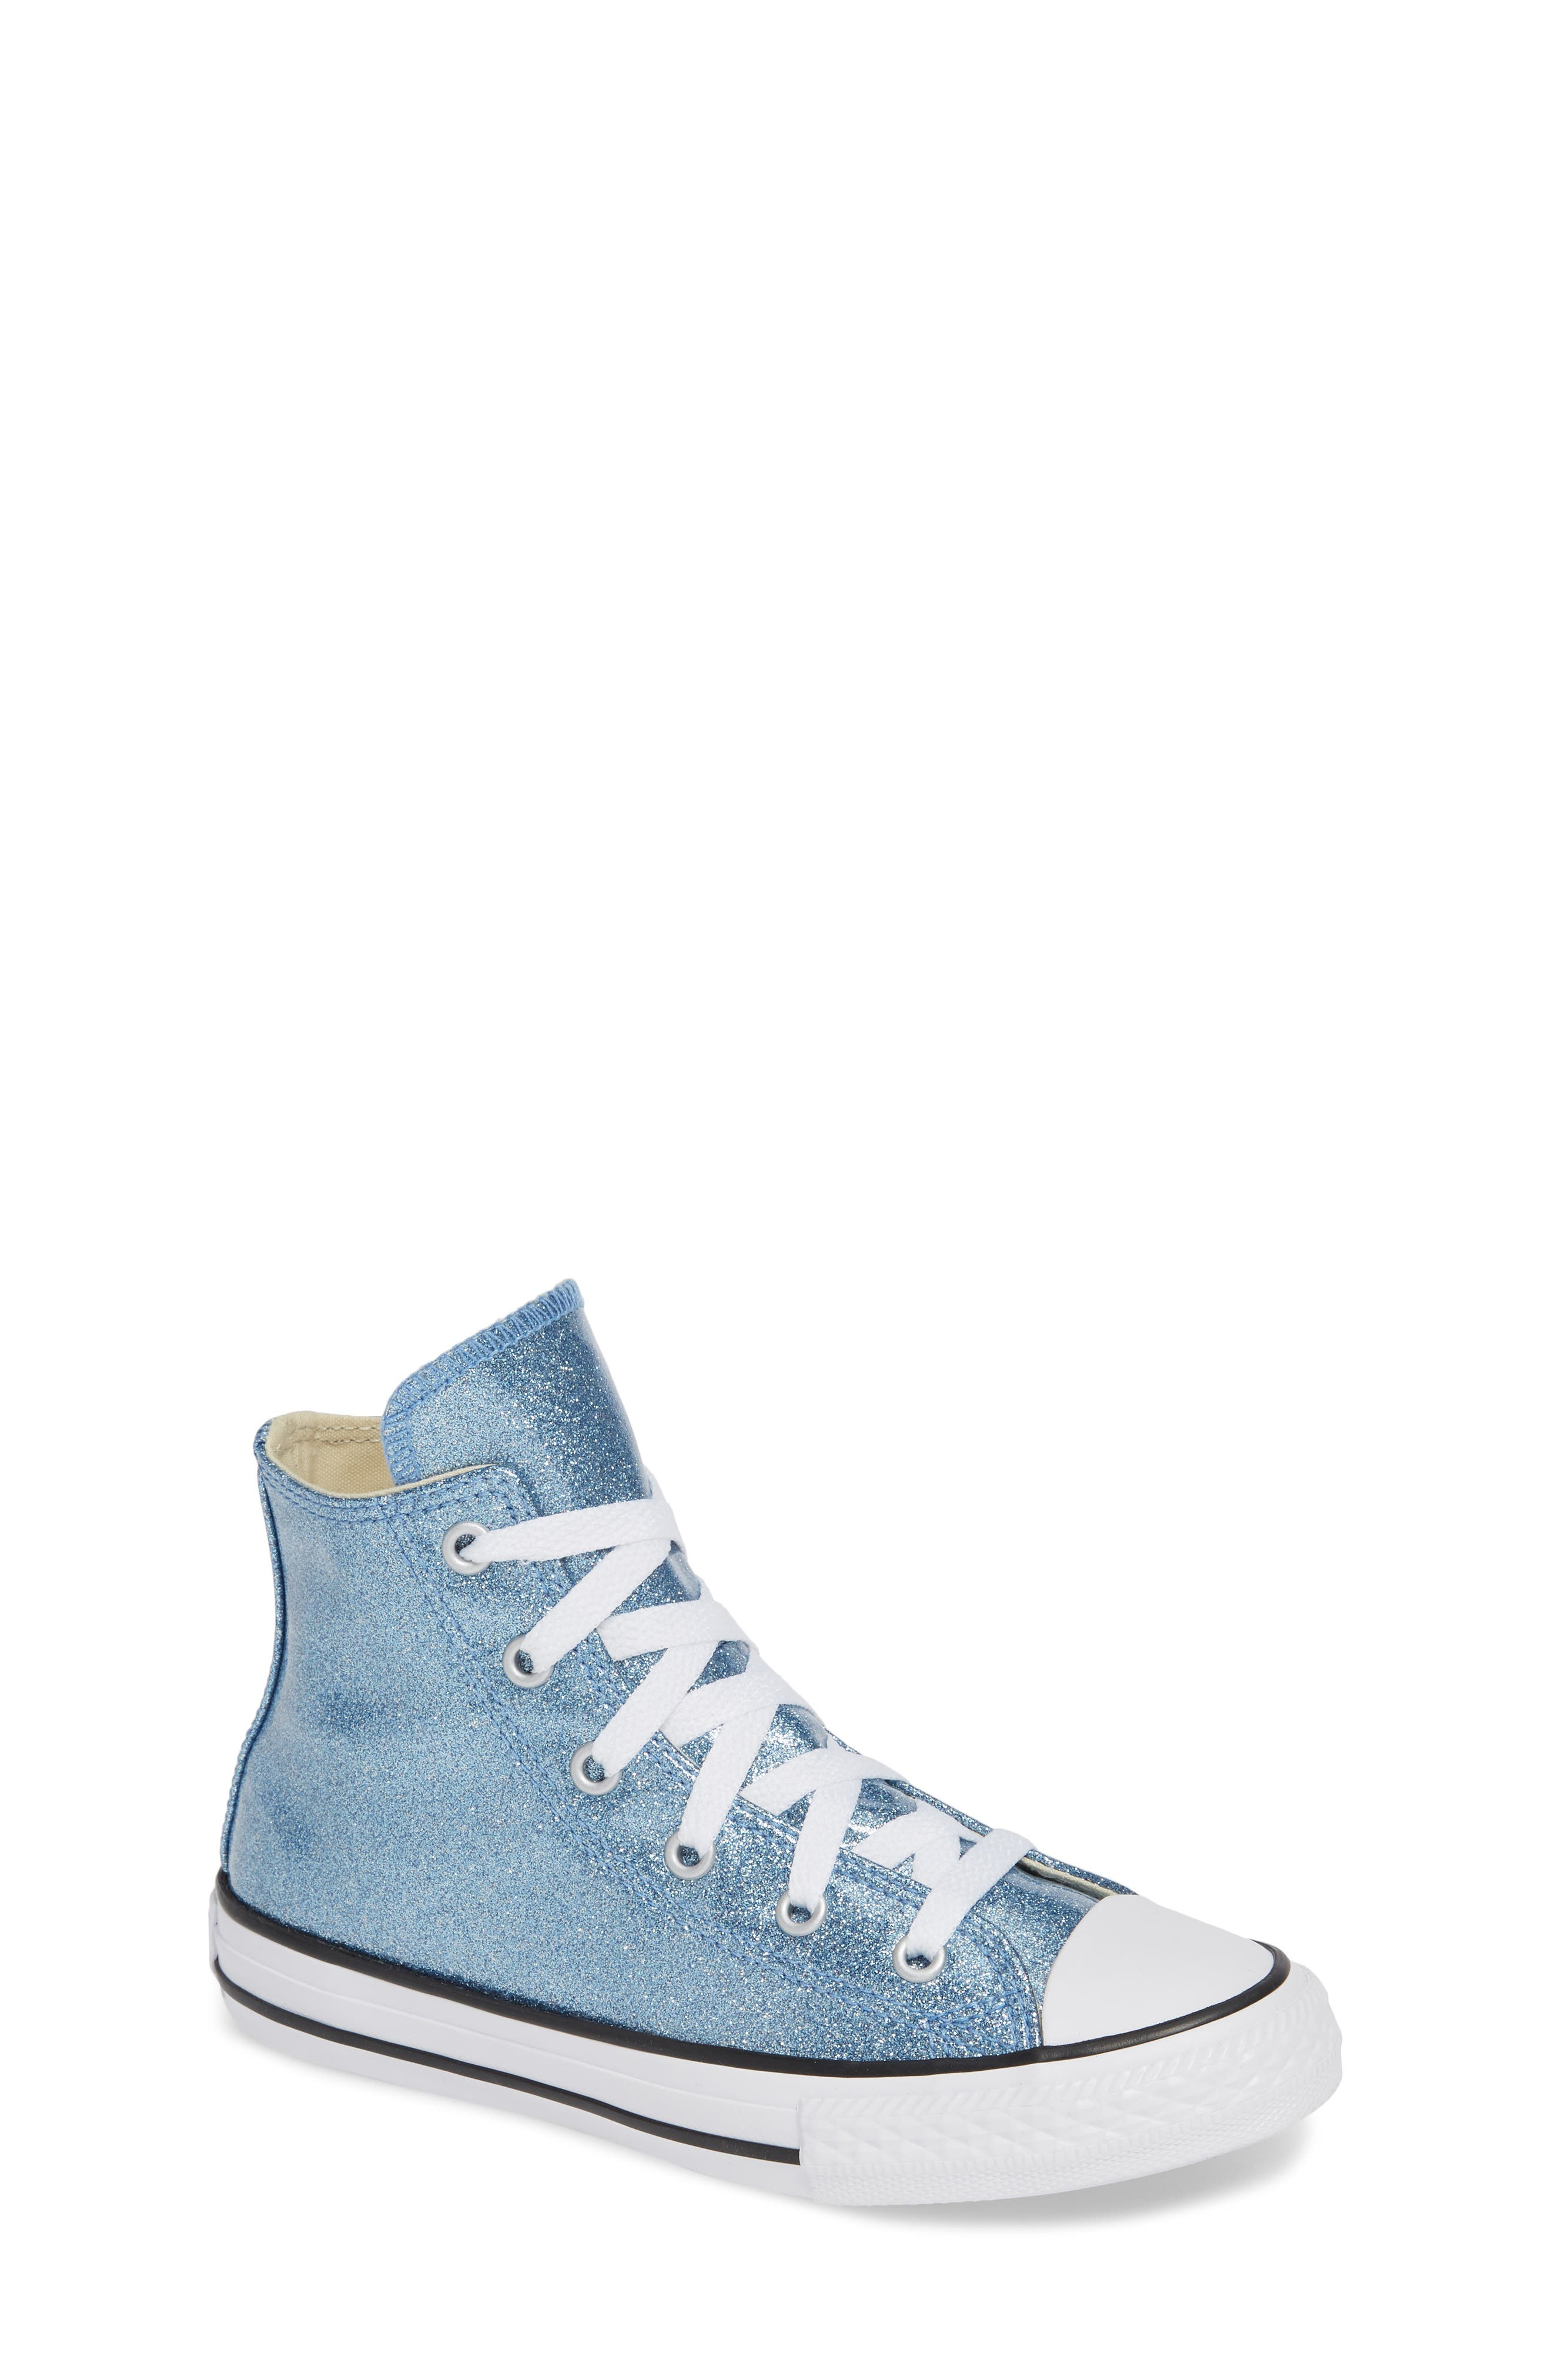 All Star<sup>®</sup> Glitter High Top Sneaker,                             Main thumbnail 1, color,                             Light Blue